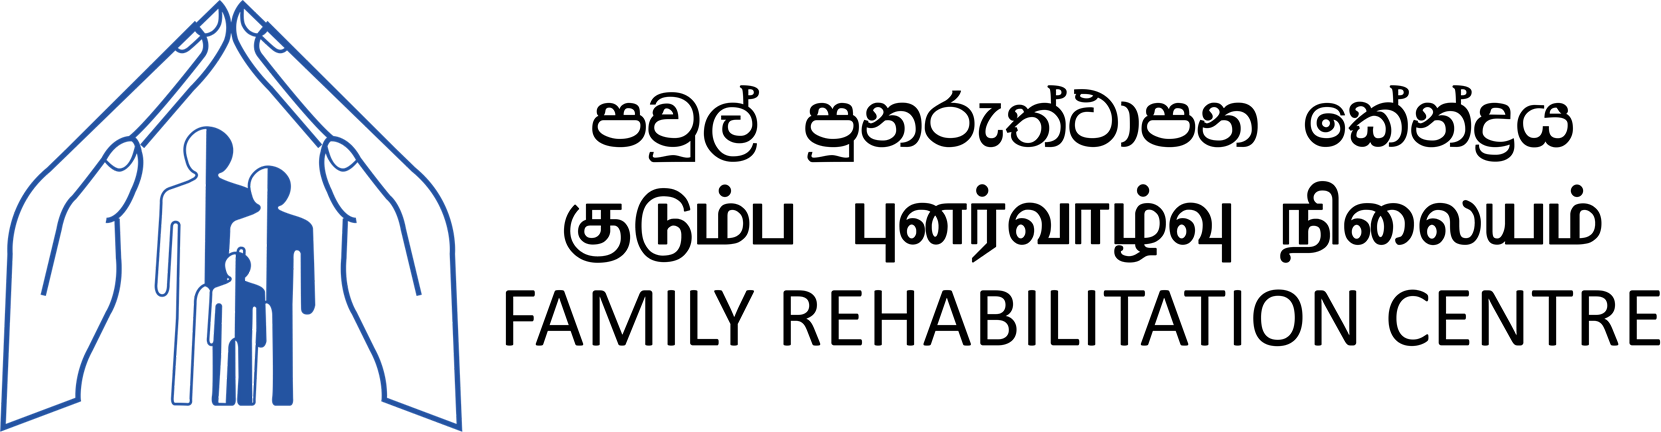 Family Rehabilitation Centre (FRC) - An organzation that provides holistic treatment and care to those affected by trauma